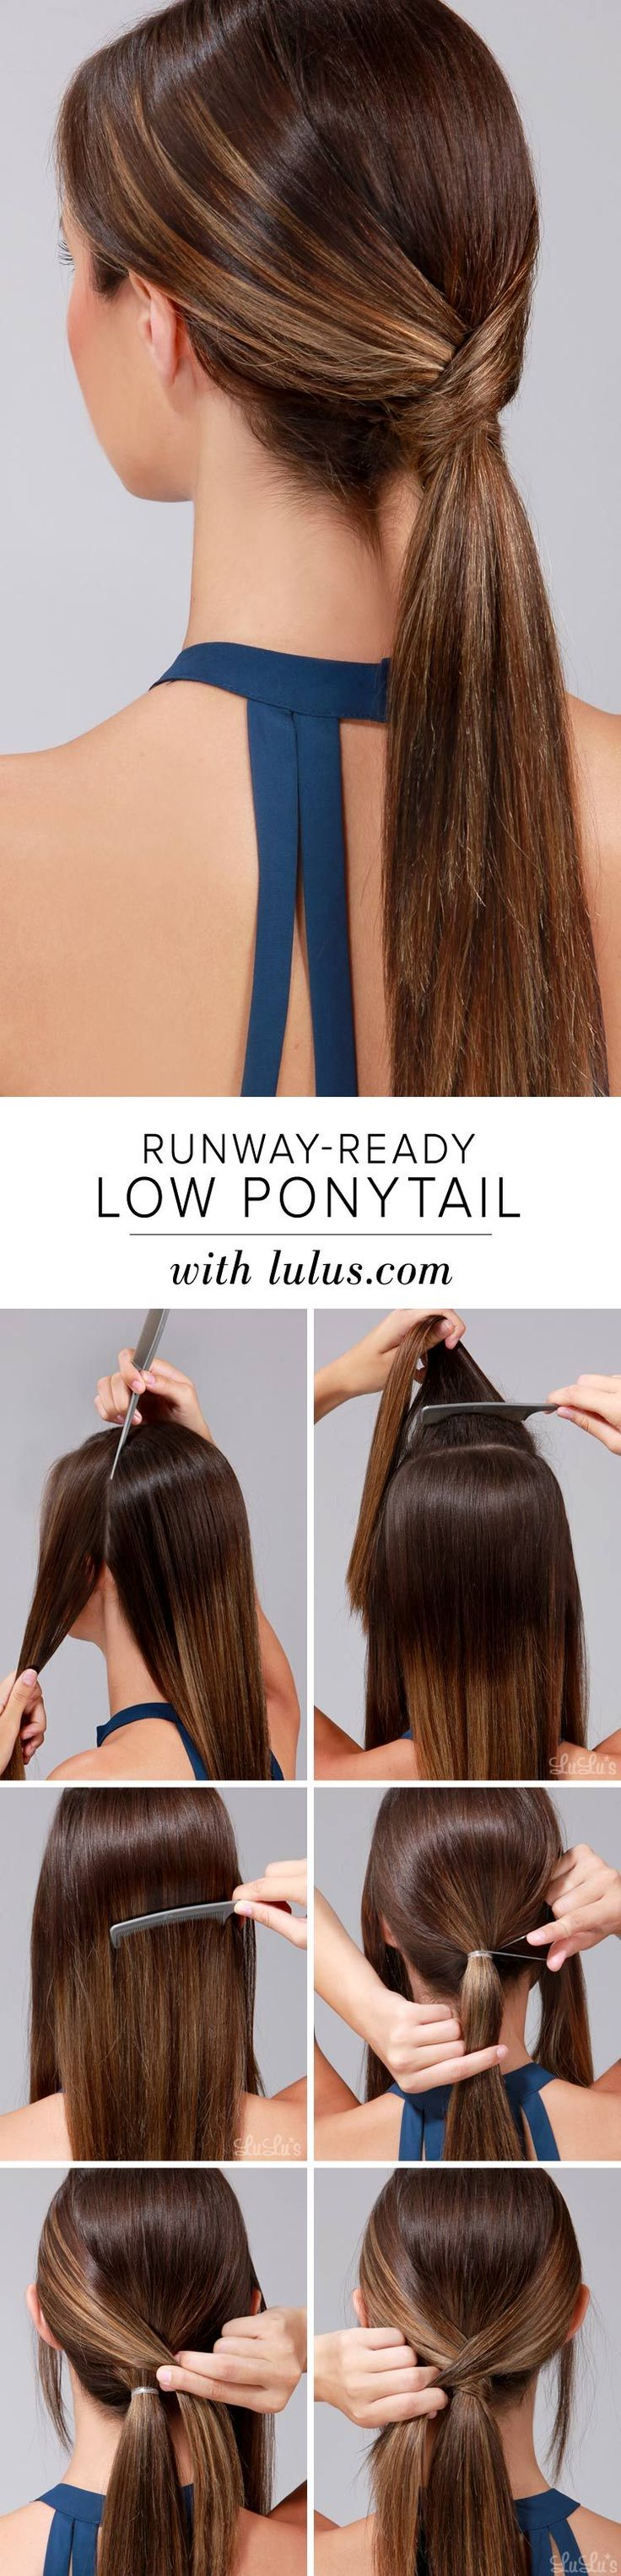 Runway-Ready Low Ponytail tutorial